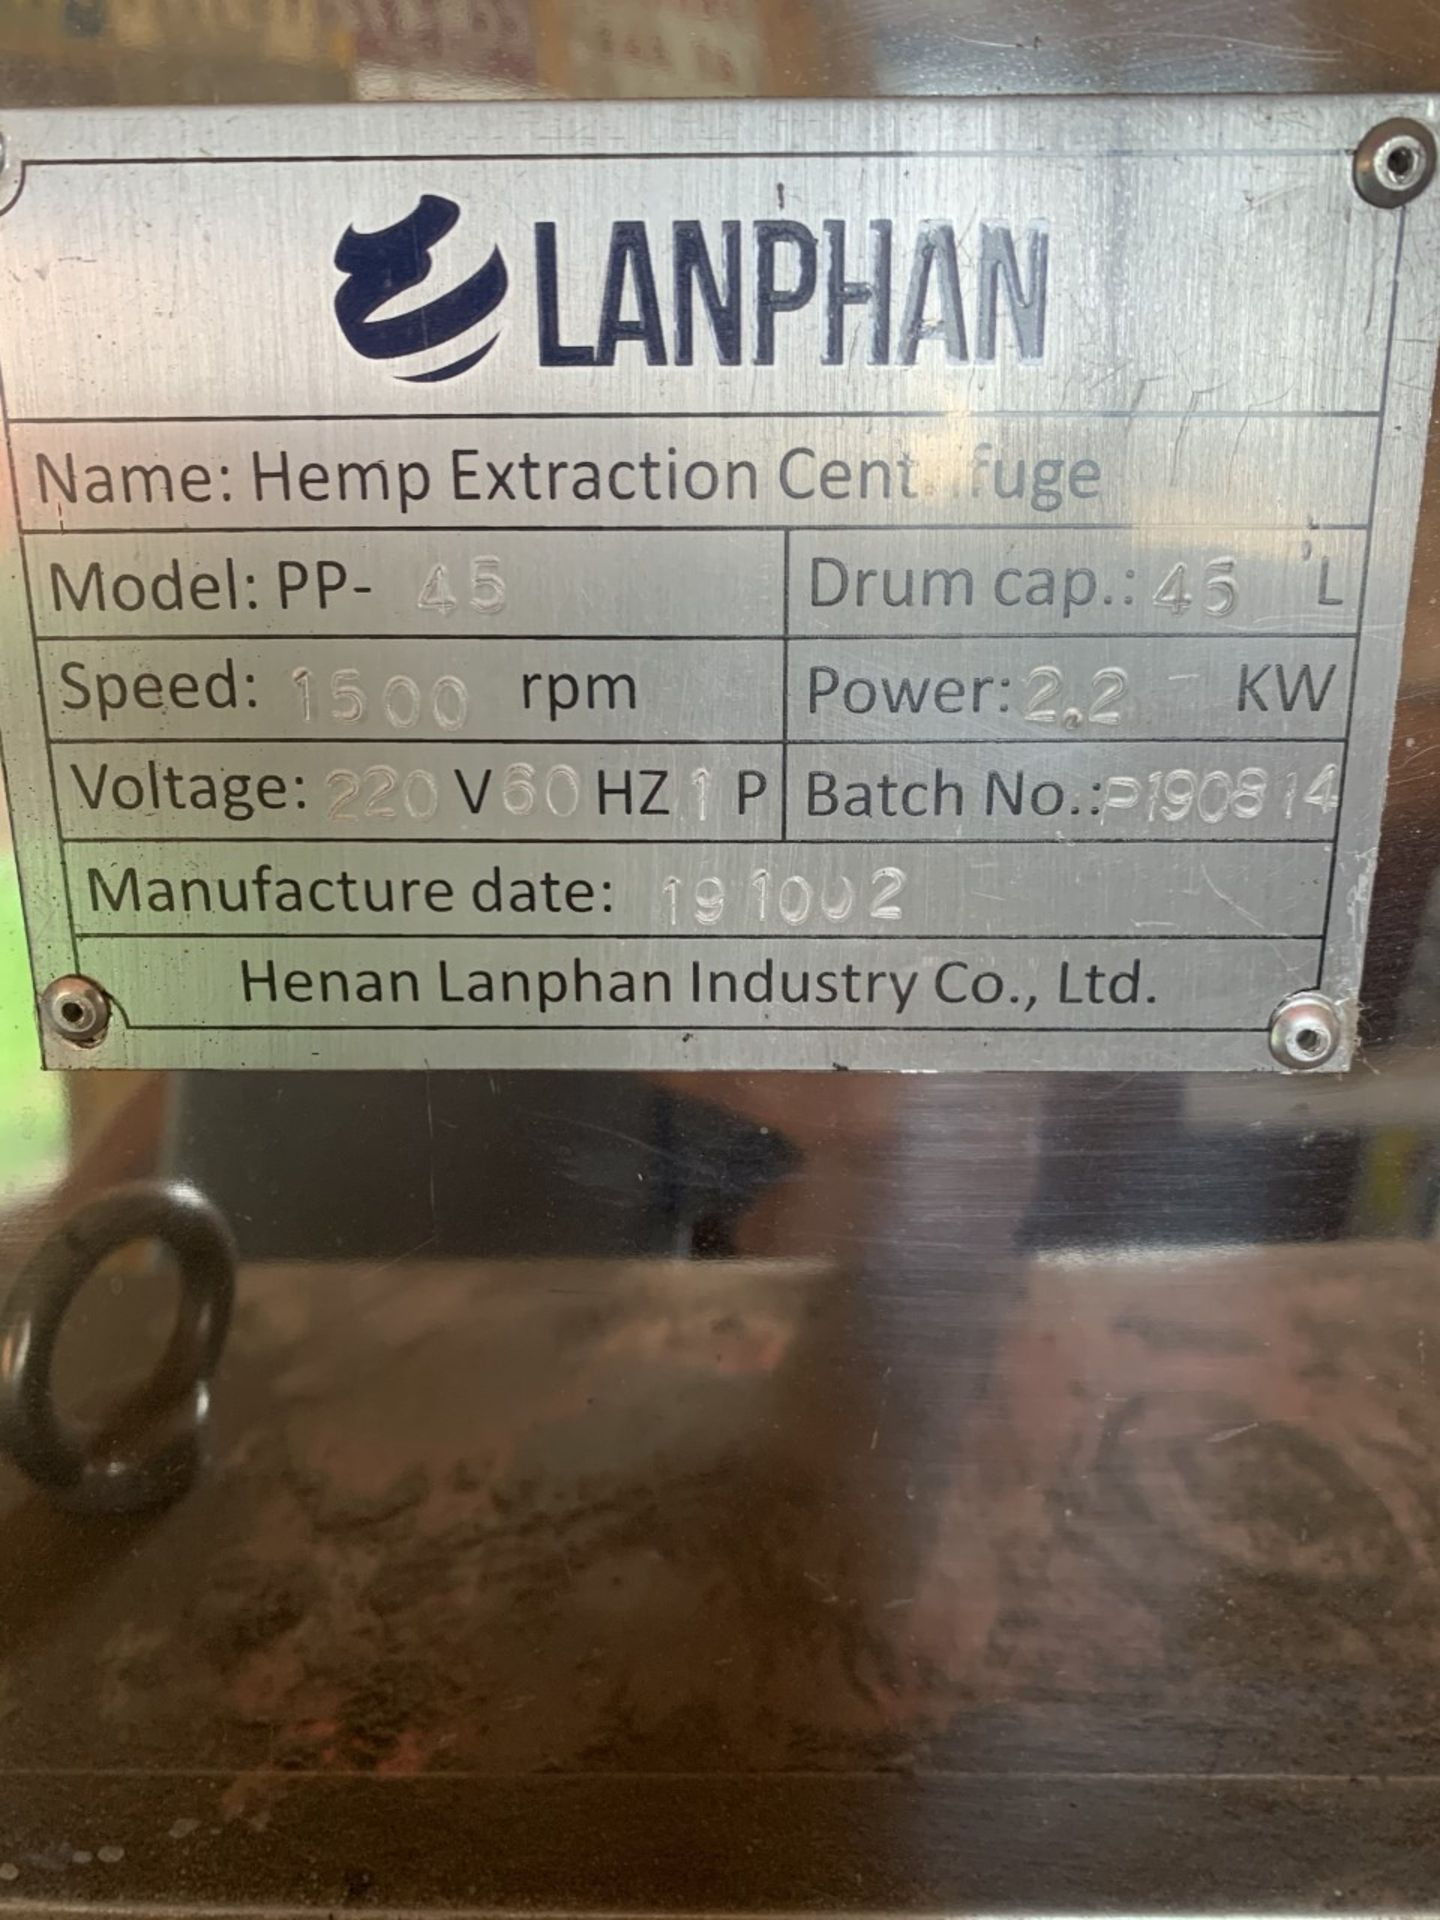 Used Henan Lanphan Industry Co. Hemp Extraction Centrifuge. Model PP-45. 20 lbs per batch - Image 3 of 3